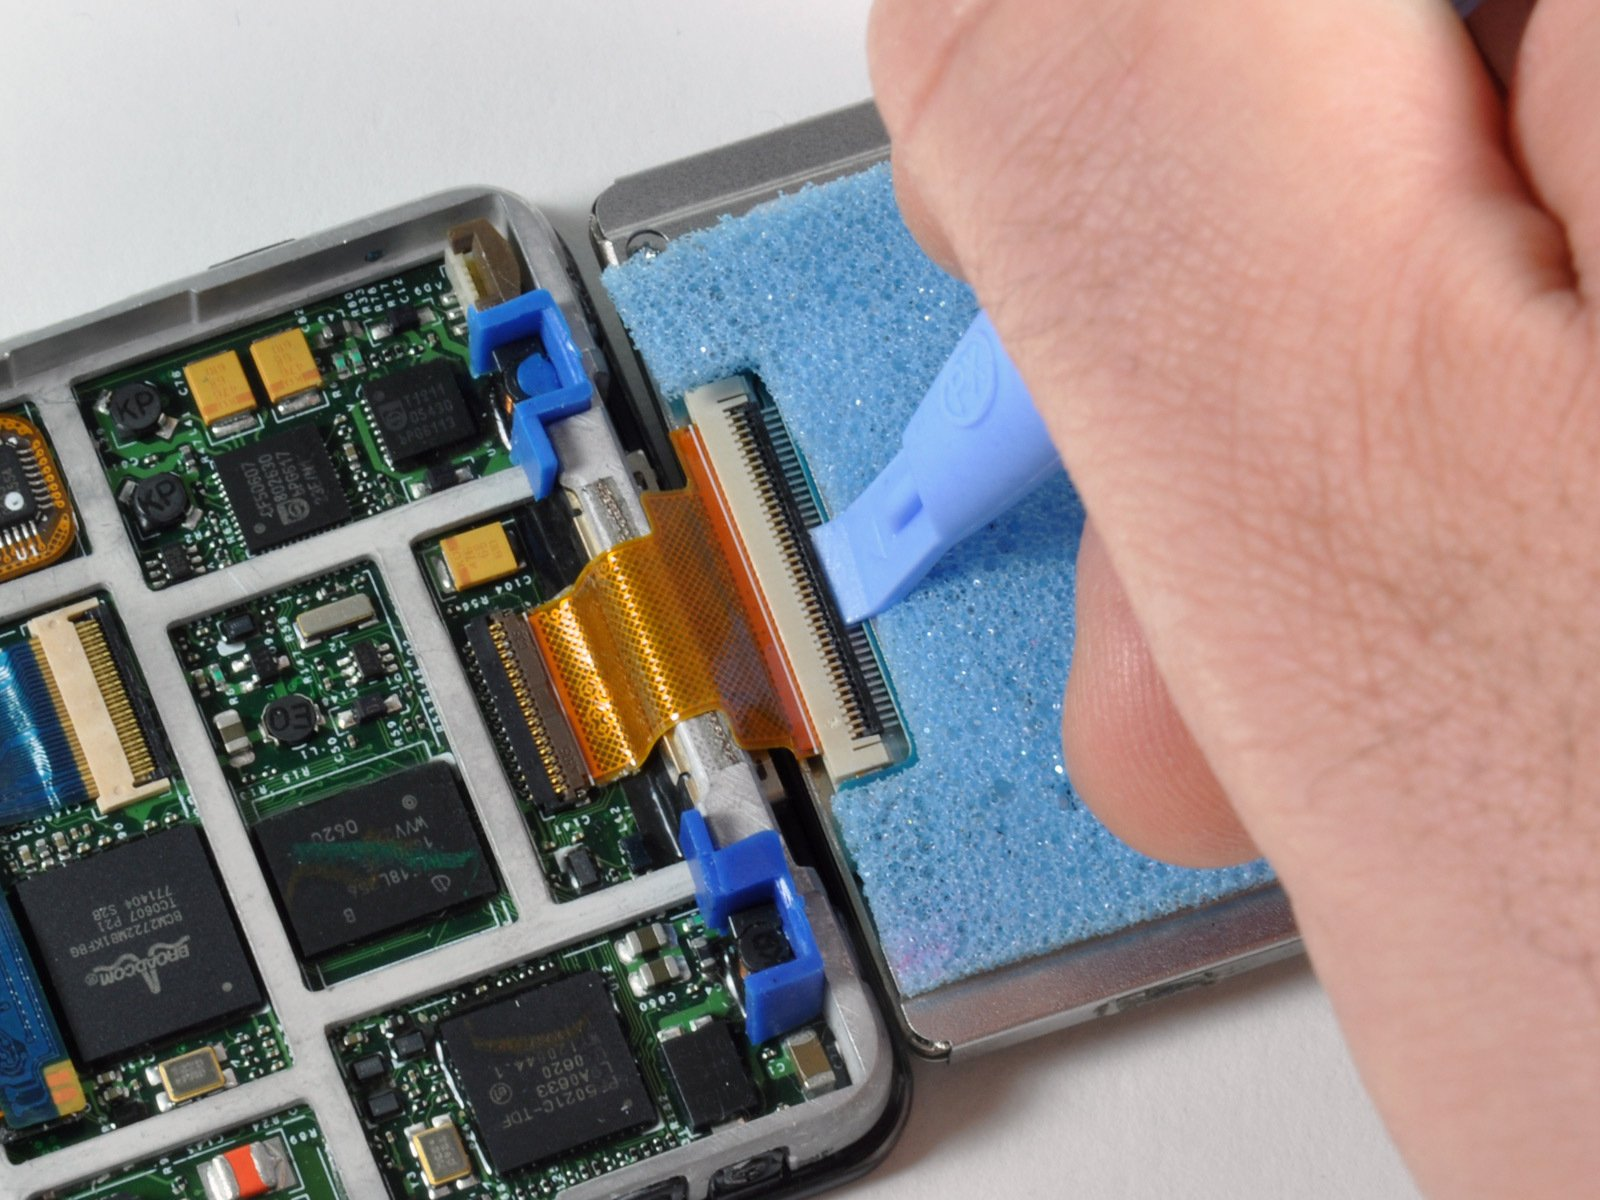 Ipod 5th Generation Video Hard Drive Replacement Ifixit Repair Guide